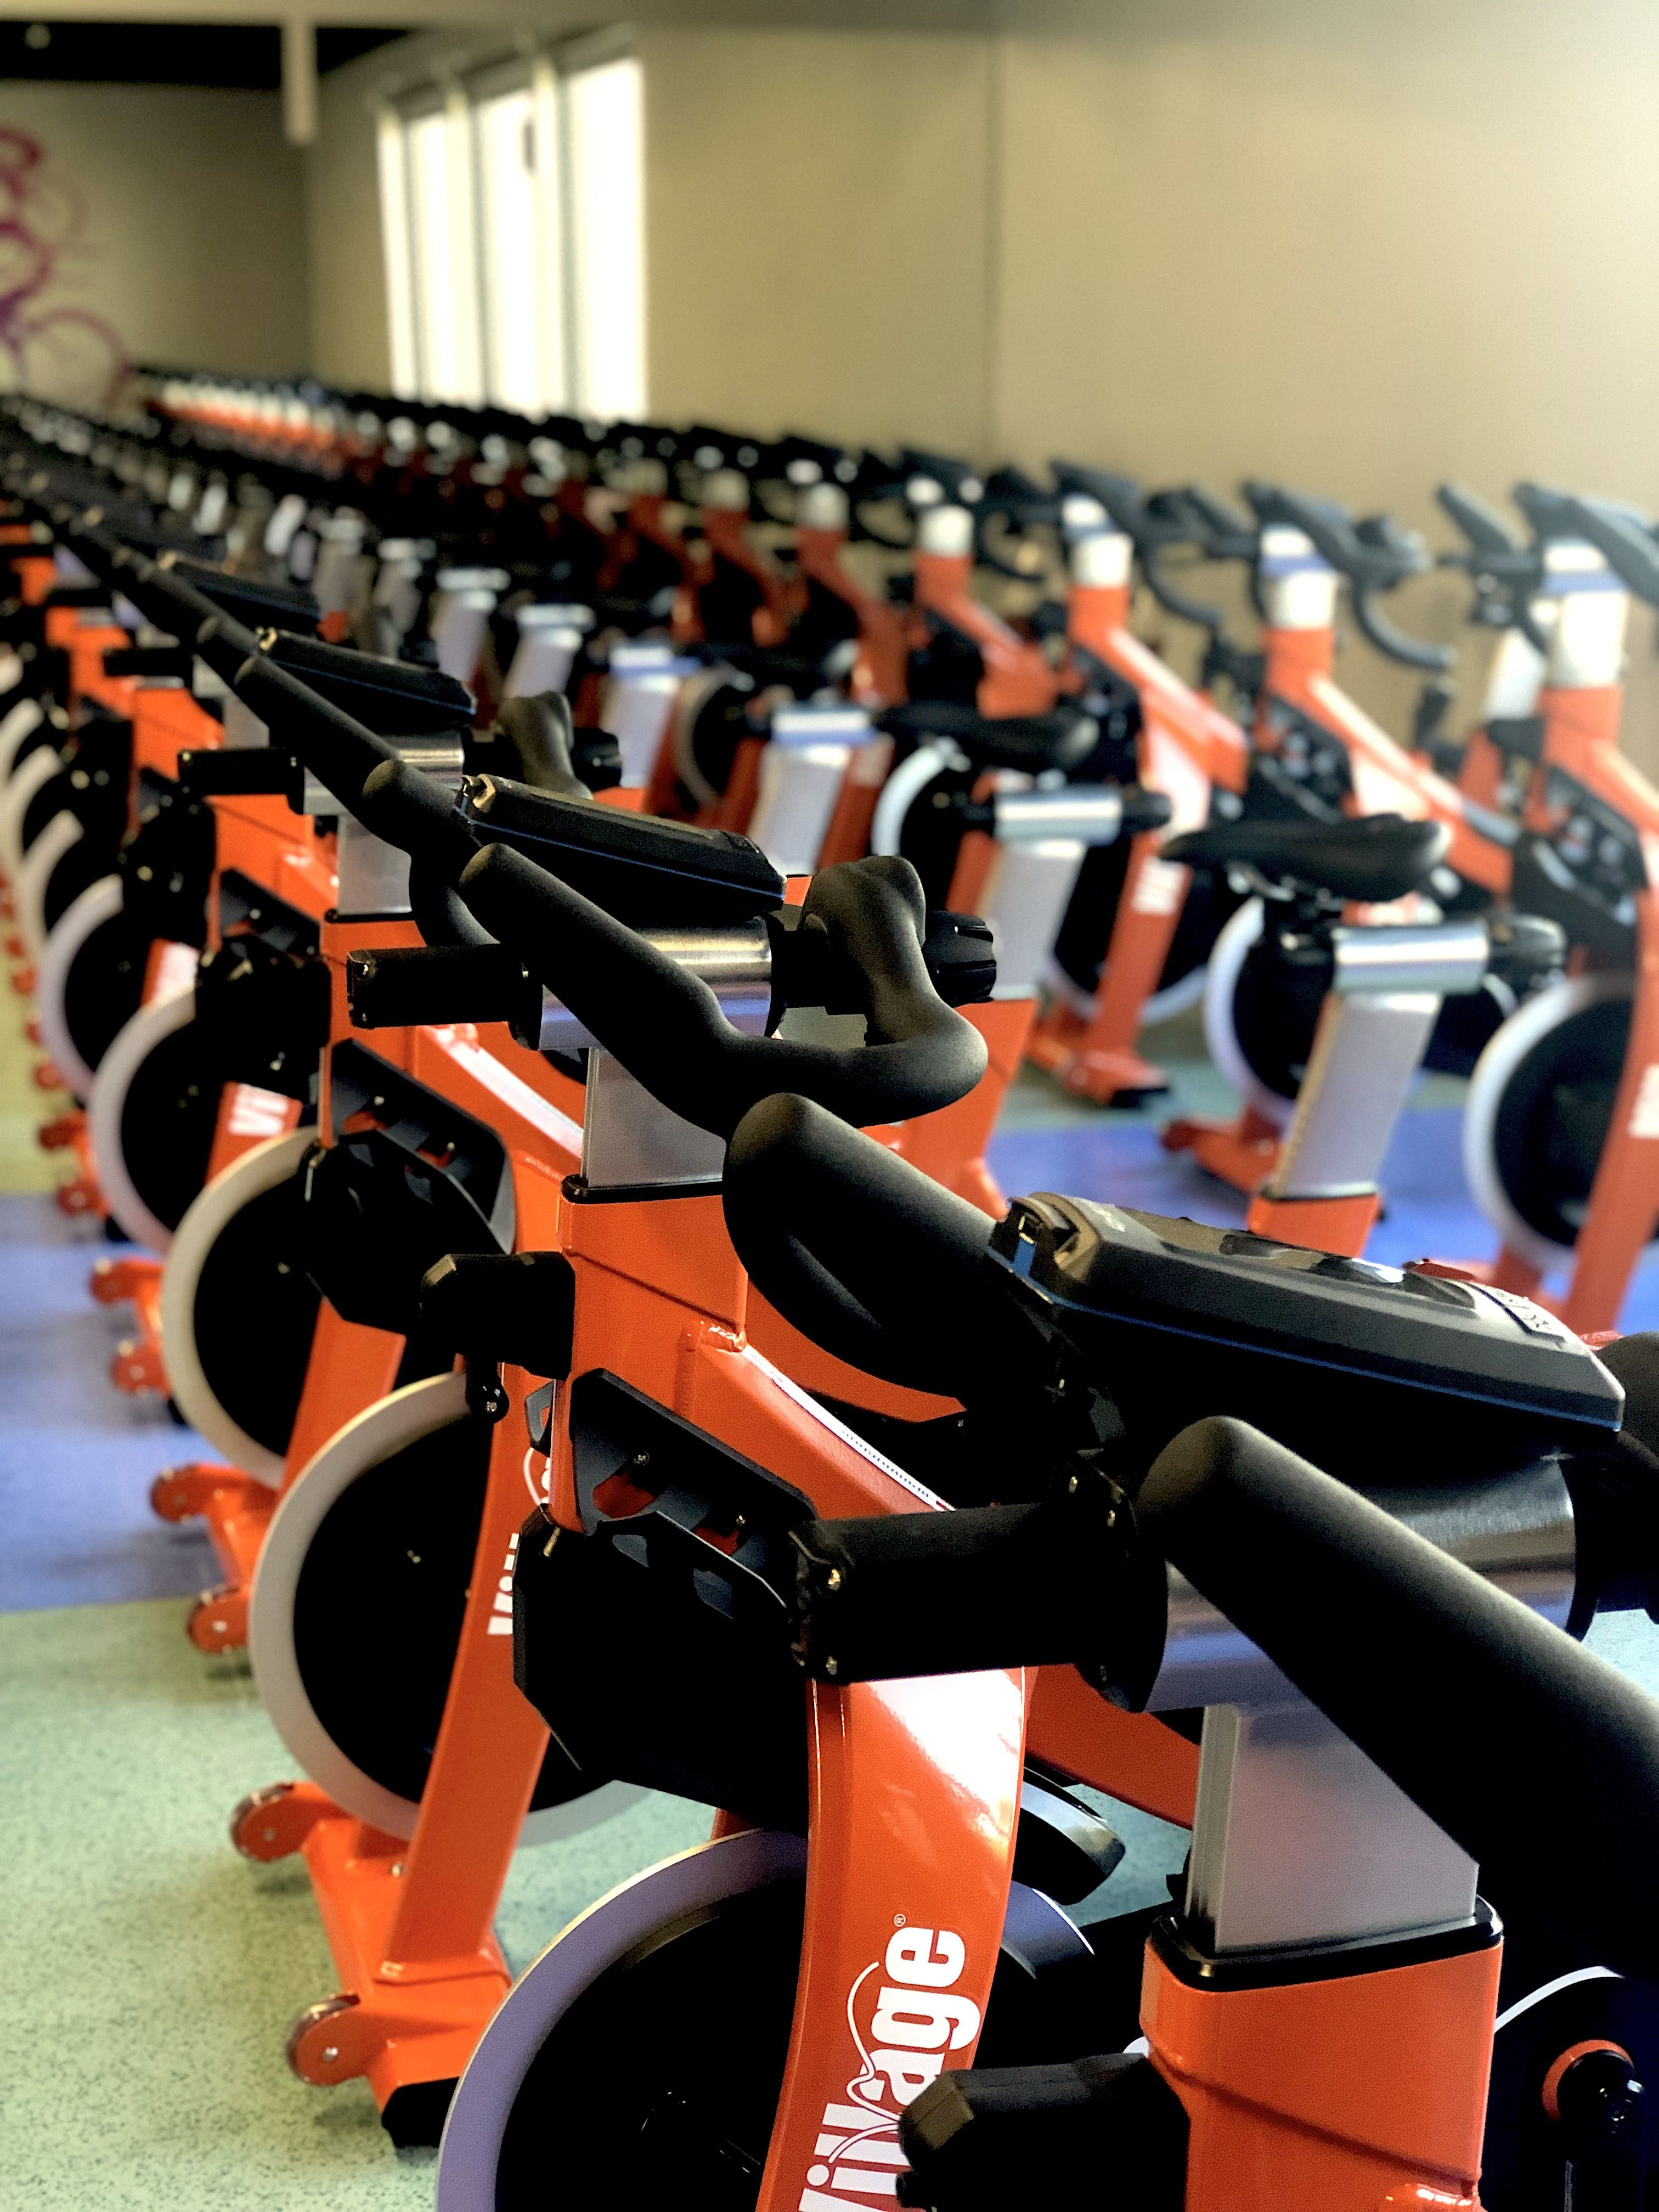 Village Cycle Bikes Cycle Spin Fitness Club Health Club Health Fitness